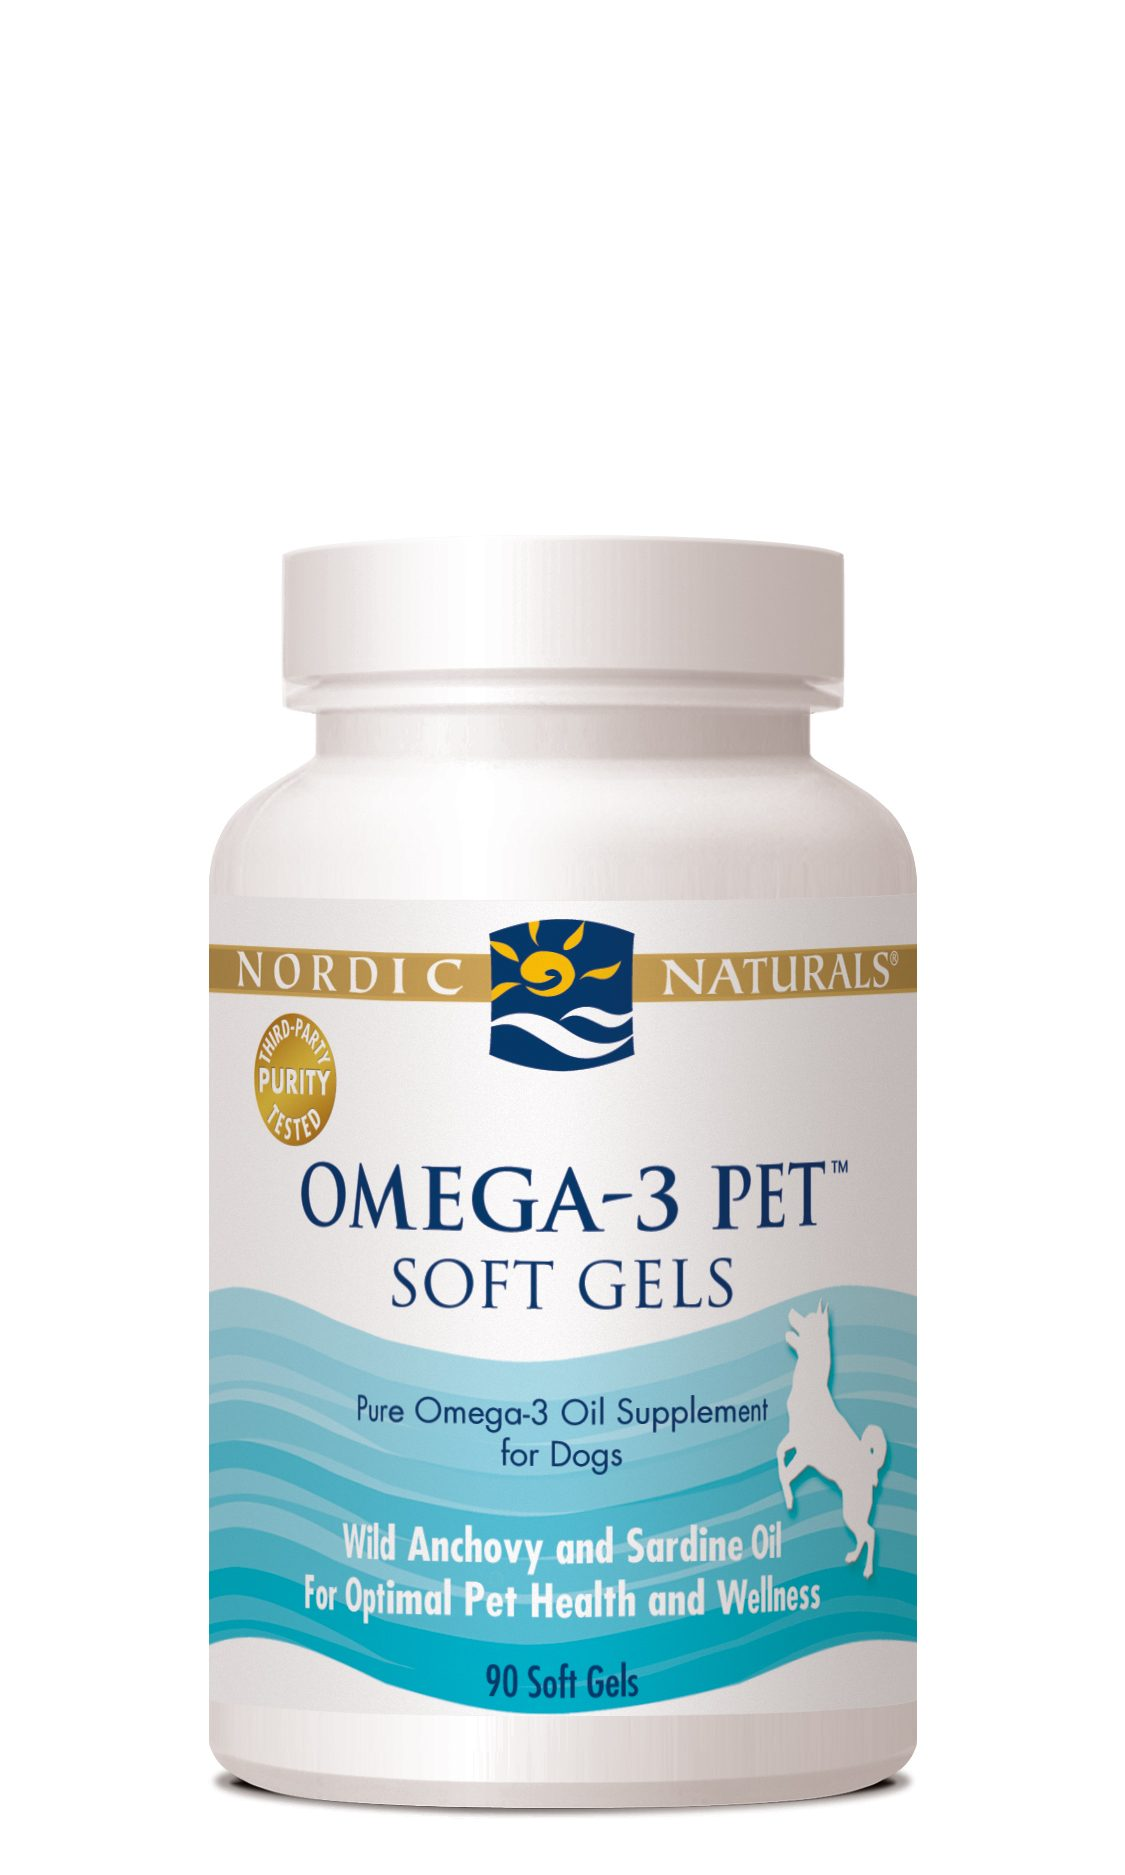 Nordic Naturals Omega-3 Fish Oil, Soft Gels, 90 count